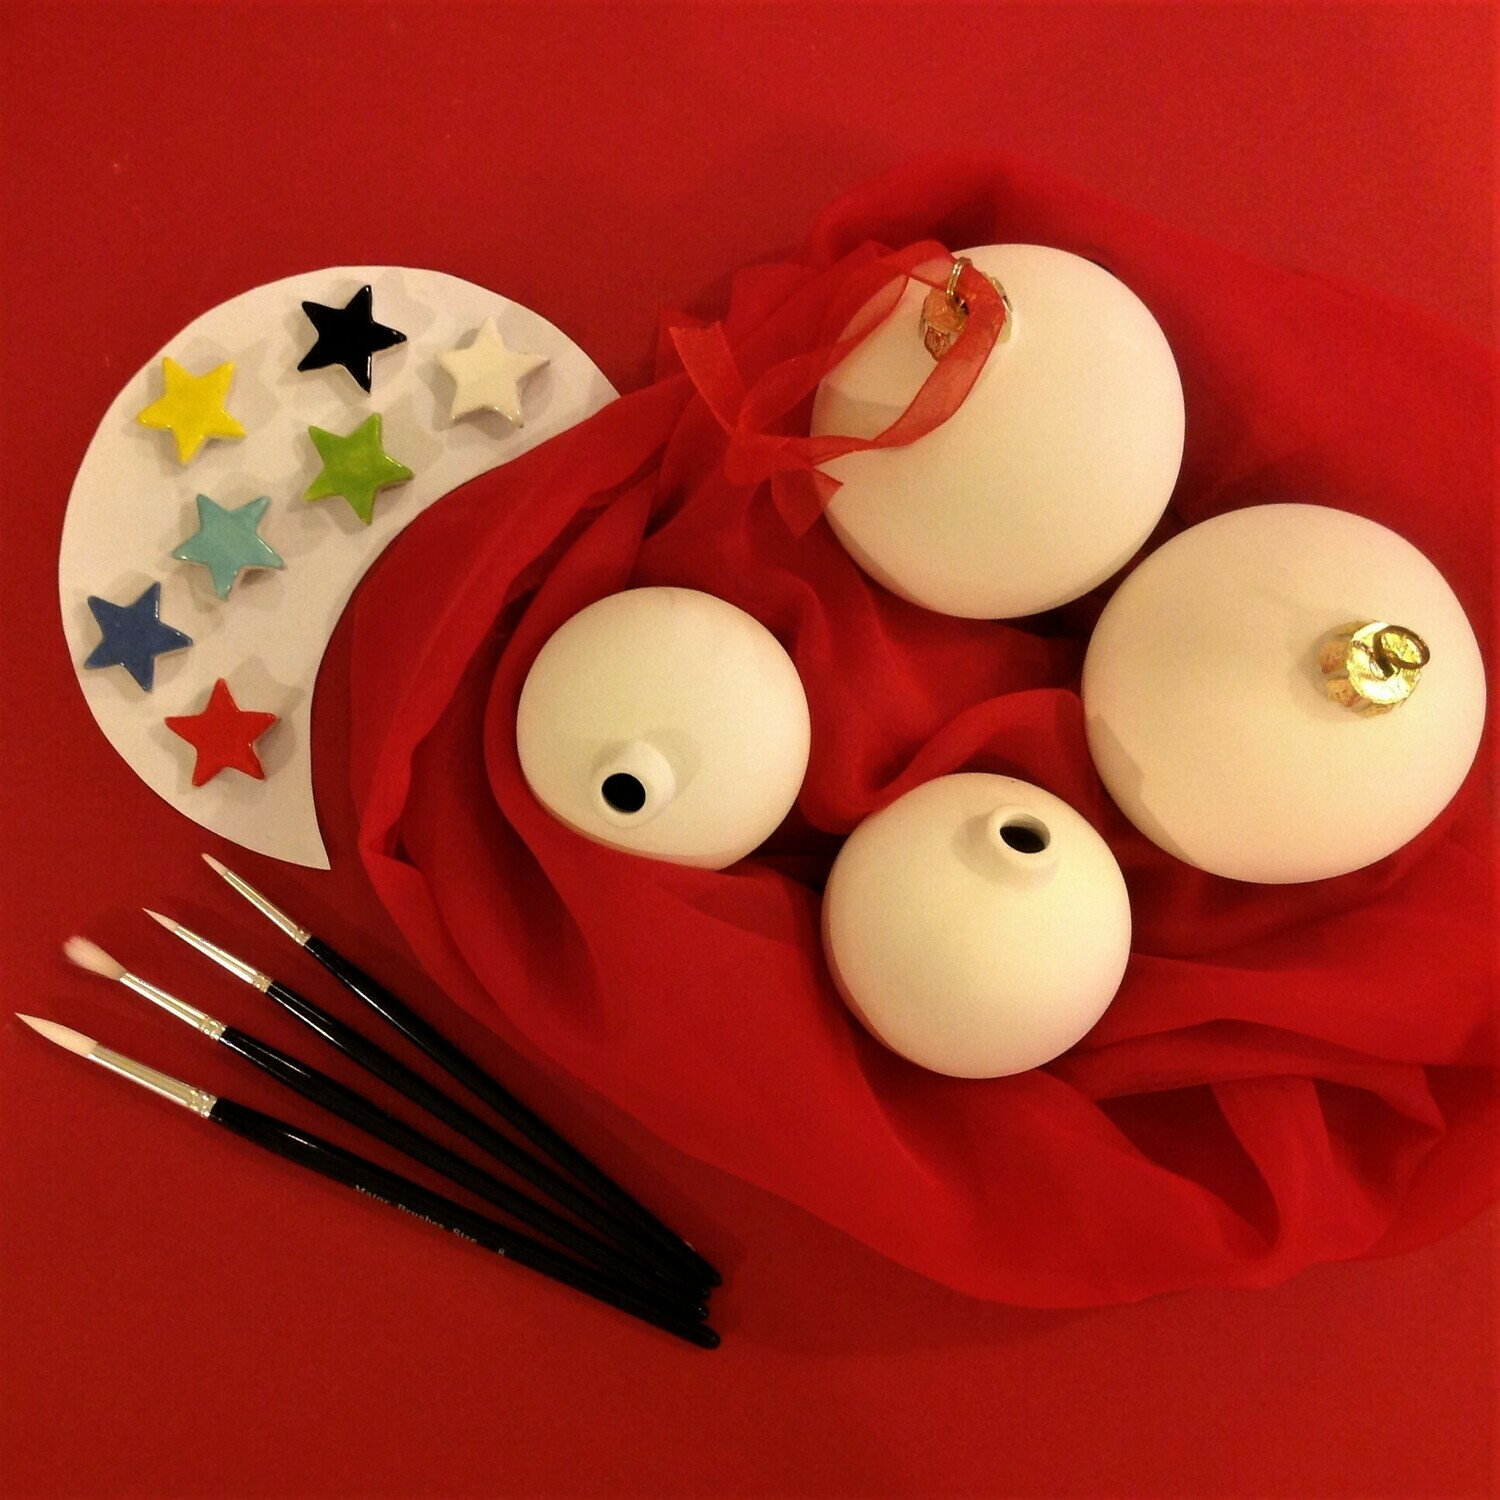 4 Baubles - 2 large and 2 small, glazes and brushes